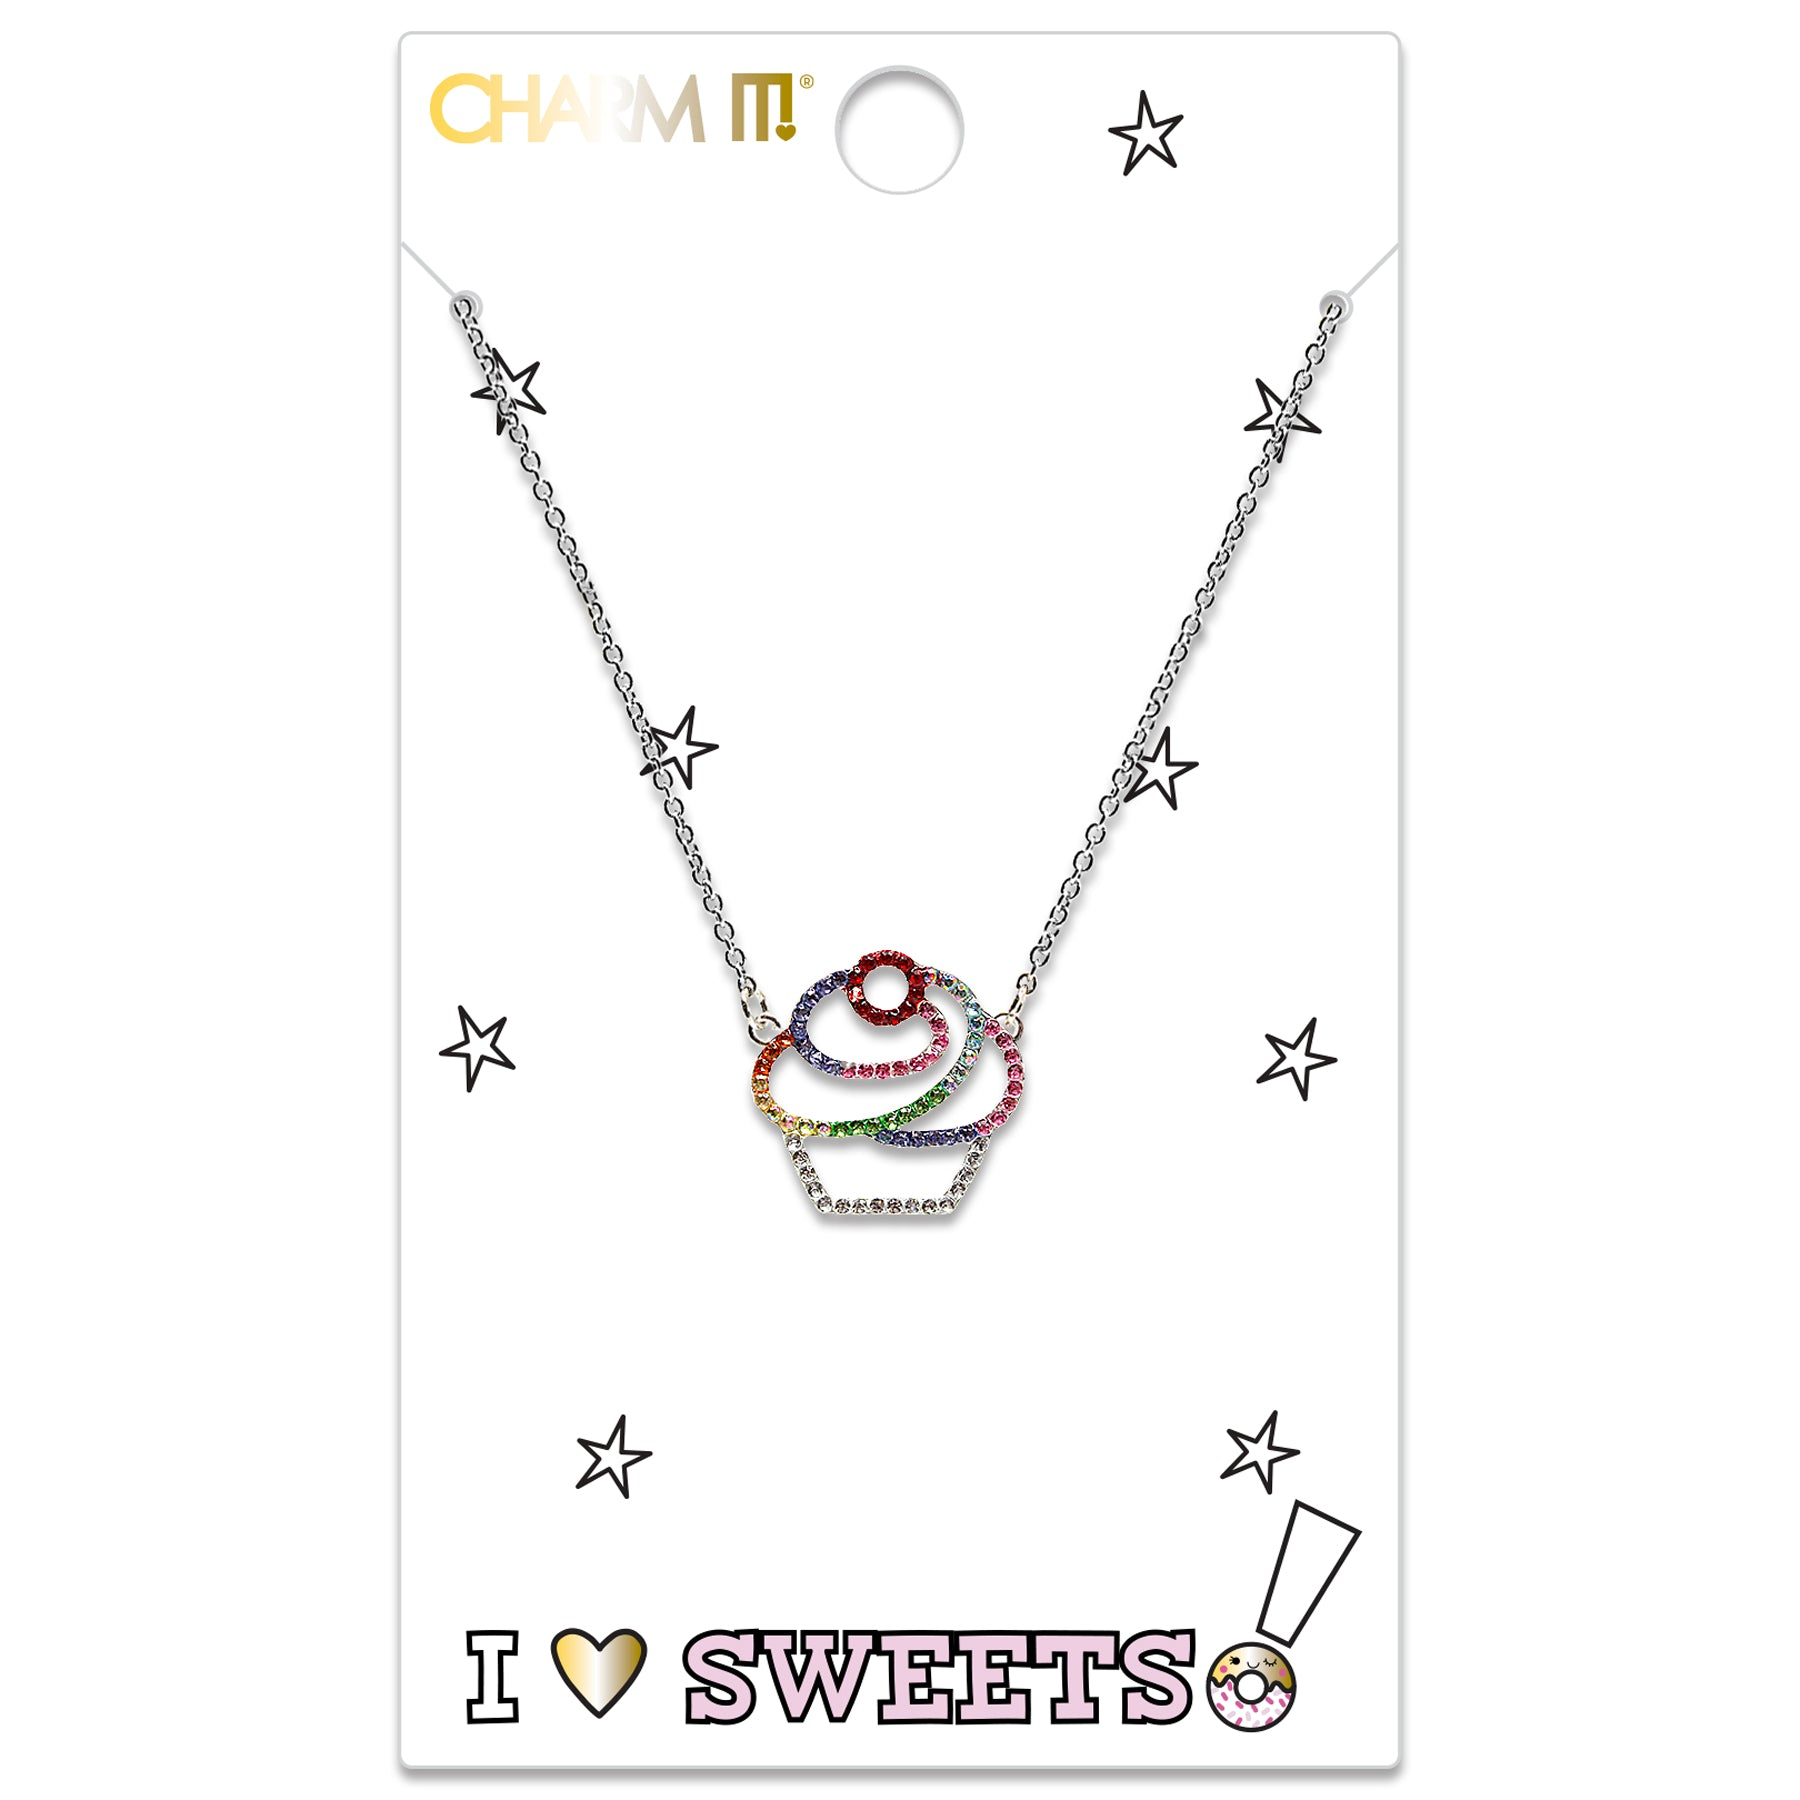 CHARM IT! Rhinestone Cupcake Necklace